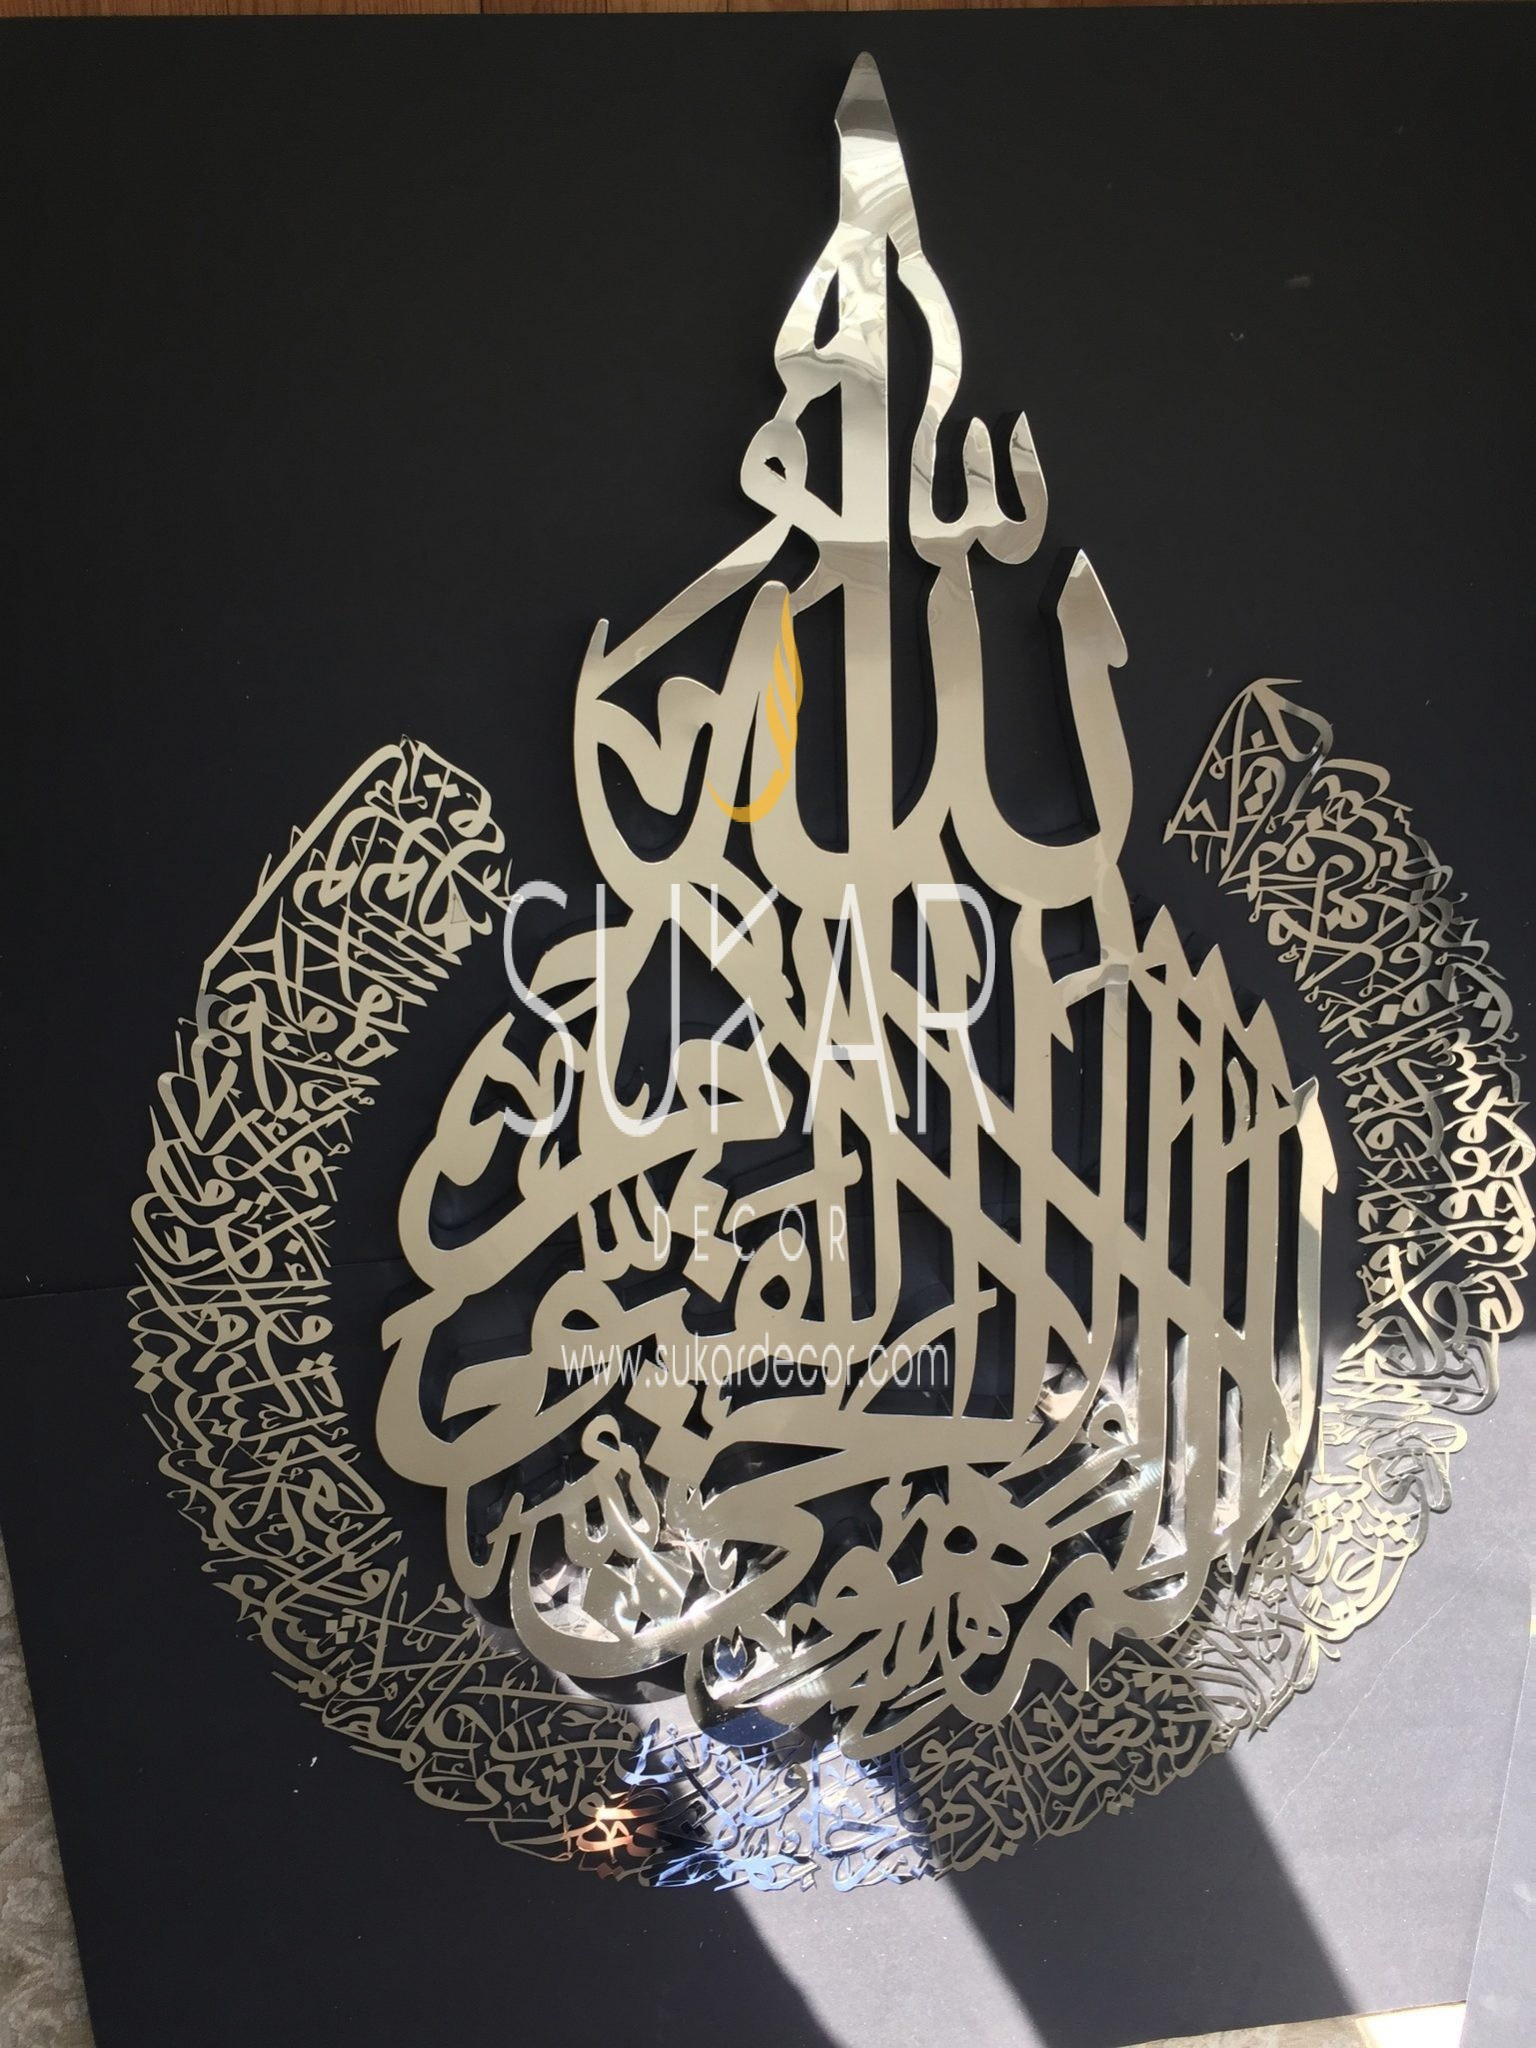 Good Ayatul Kursi  Modern Islamic Wall Art Calligraphy. Islamic Art Stands Out  Wherever You Place